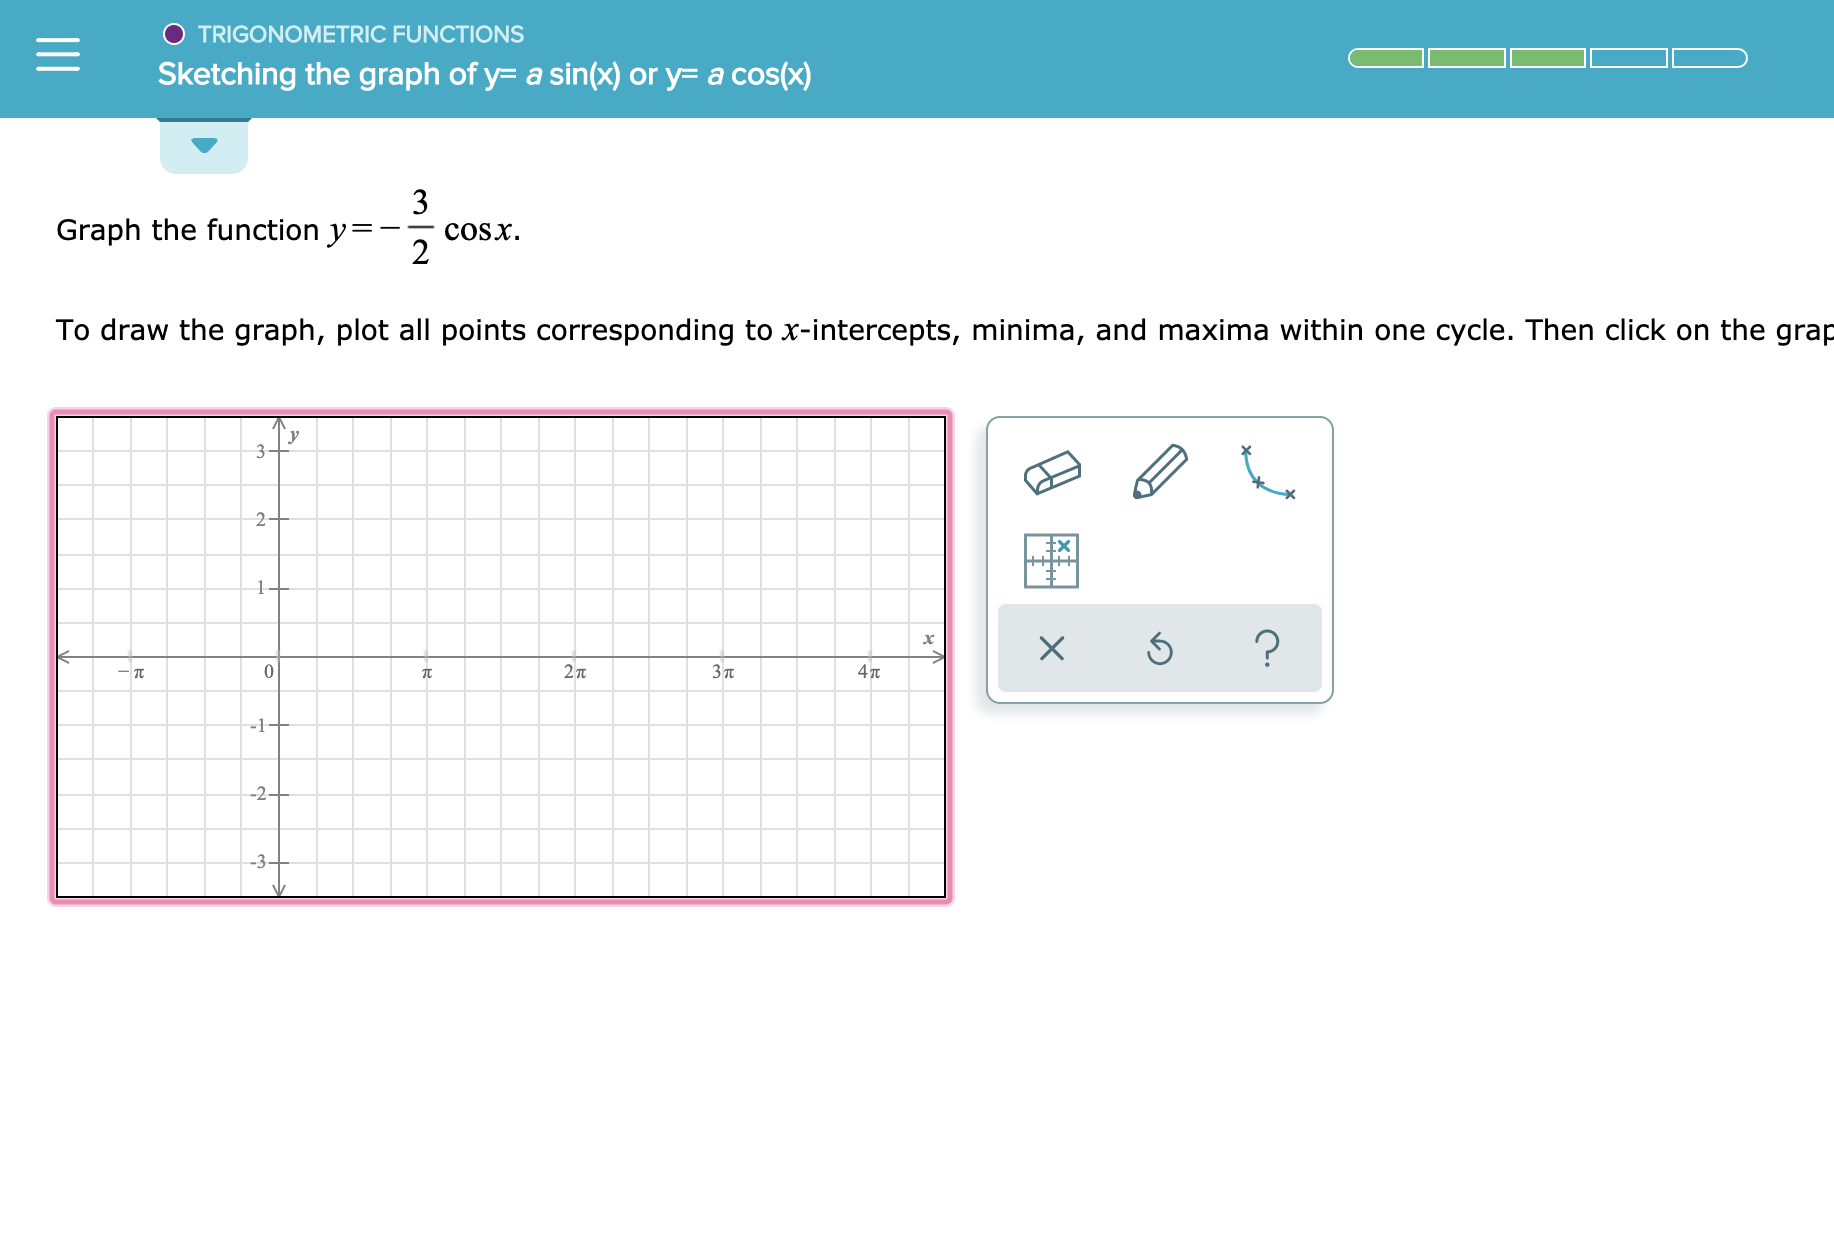 TRIGONOMETRIC FUNCTIONS Sketching the graph of y- a sin(x) or y= a cos(x) 3 COSX 2 Graph the function y= To draw the graph, plot all points corresponding to x-intercepts, minima, and maxima within one cycle. Then click on the grap 3 2+ 1 0 2T Зп 47t -1- -2+ X